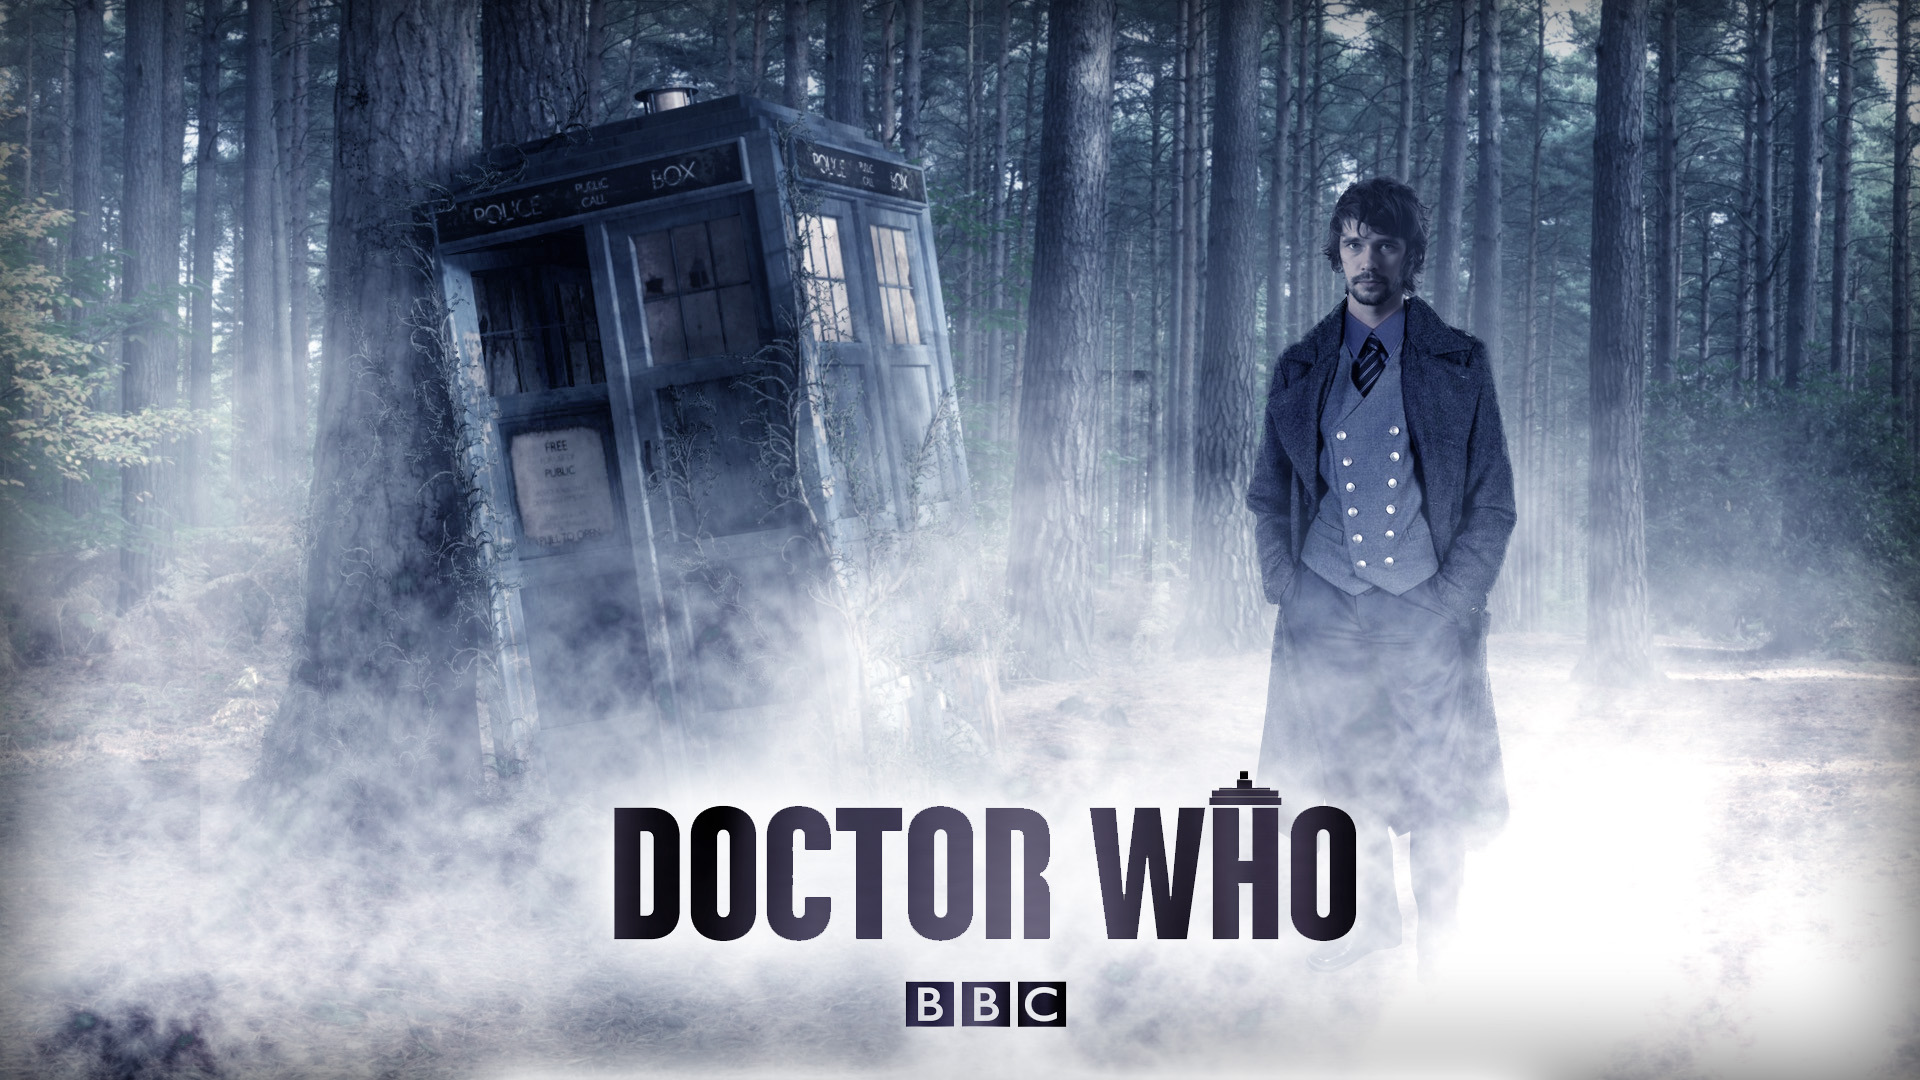 DOCTOR WHO SERIES 8 BEN WHISHAW by Umbridge1986 1920x1080